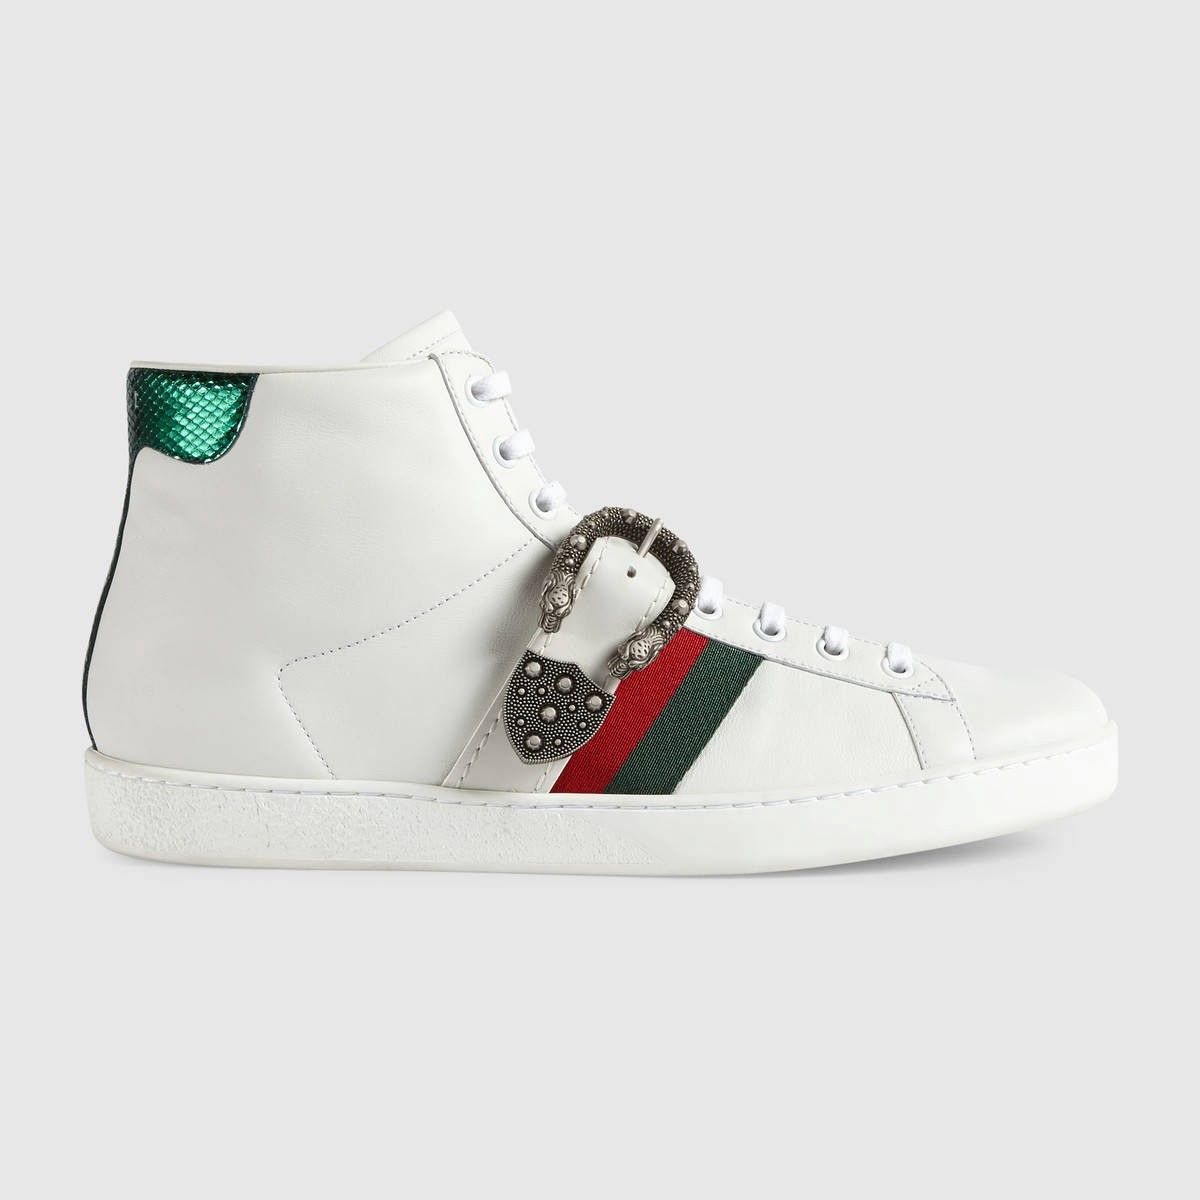 d47edafe1f7 GUCCI Ace high-top sneaker with Dionysus buckle - white leather.  gucci   shoes